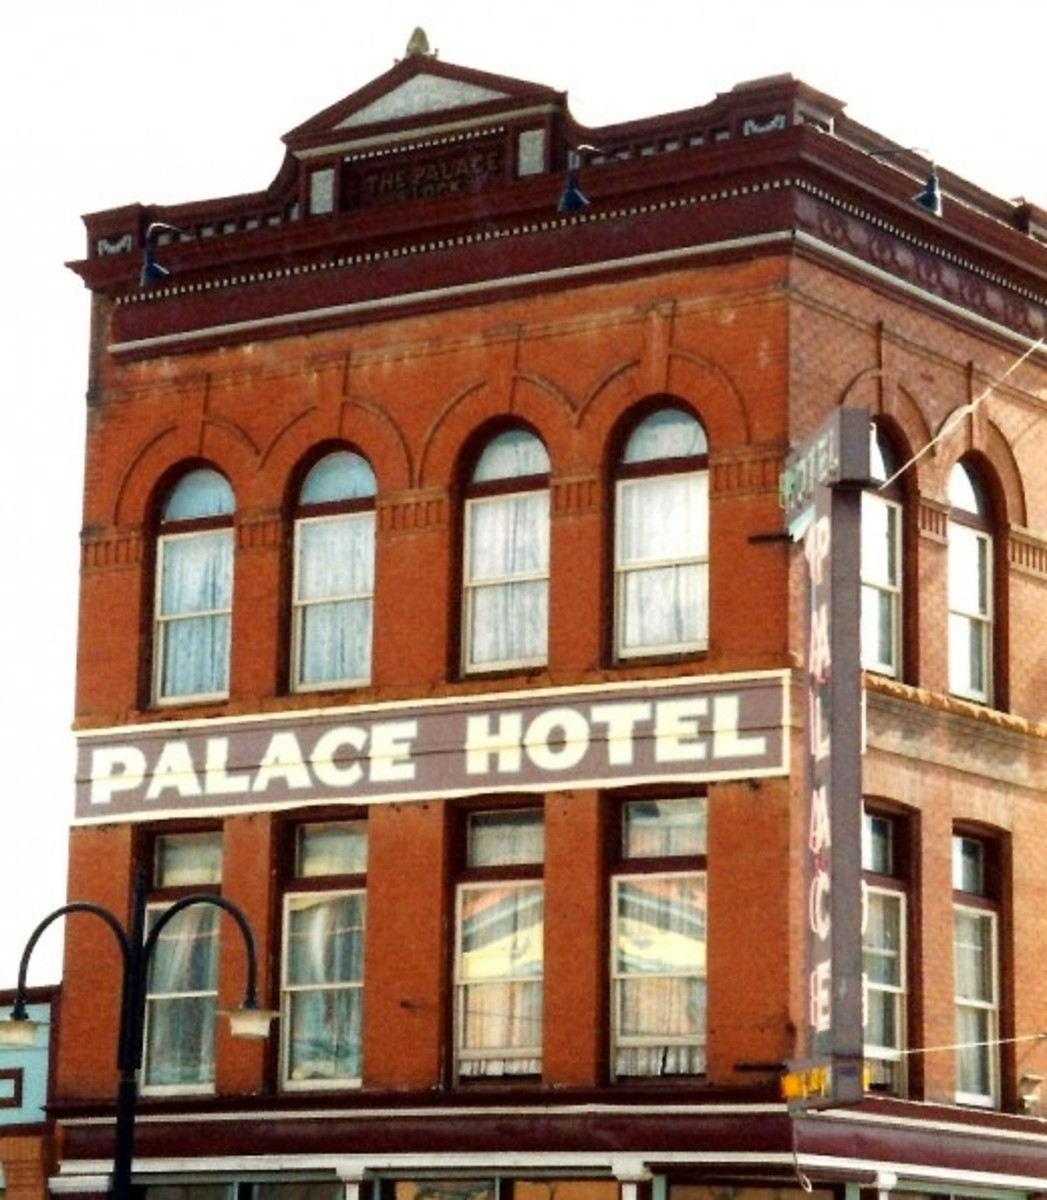 Palace Hotel building in Cripple Creek